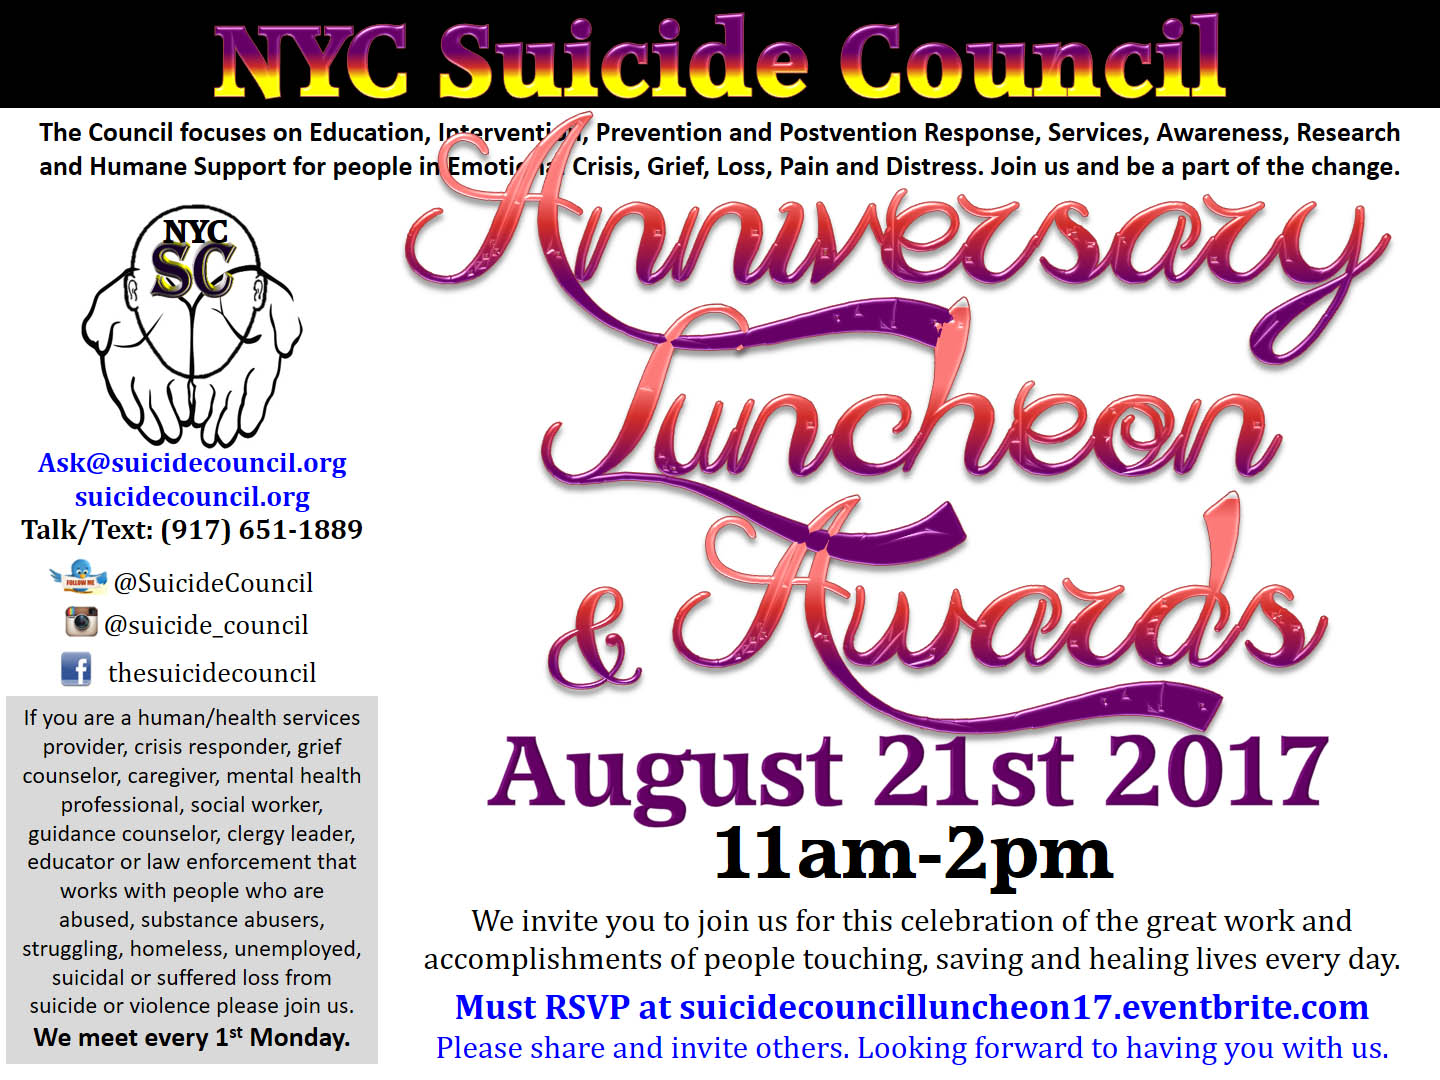 NYC_Suicide_Council_Luncheon_Awards-August_2017 copy